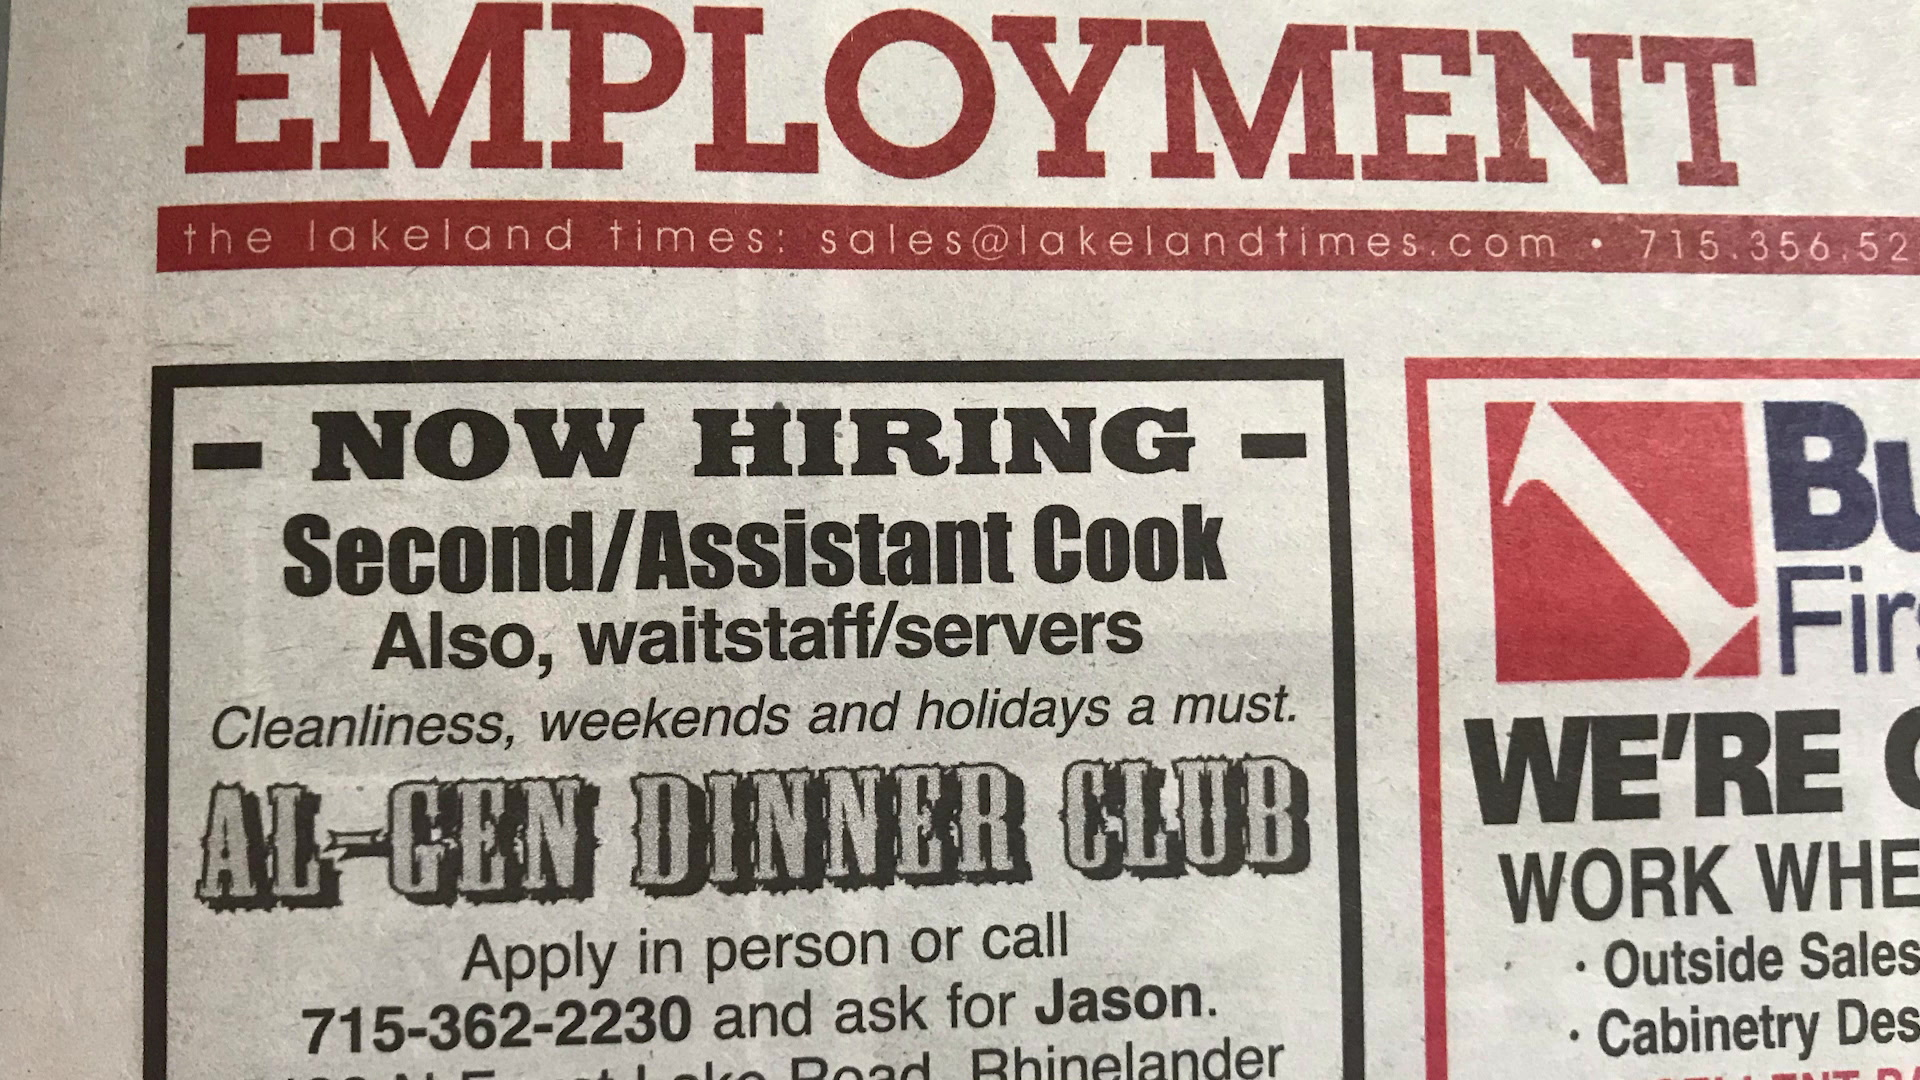 """A newspaper job ad for Al-Gen Dinner Club reads """"Now Hiring: Second/Assistant Cook also, waitstaff/servers: Cleanliness, weekends and holidays a must."""""""